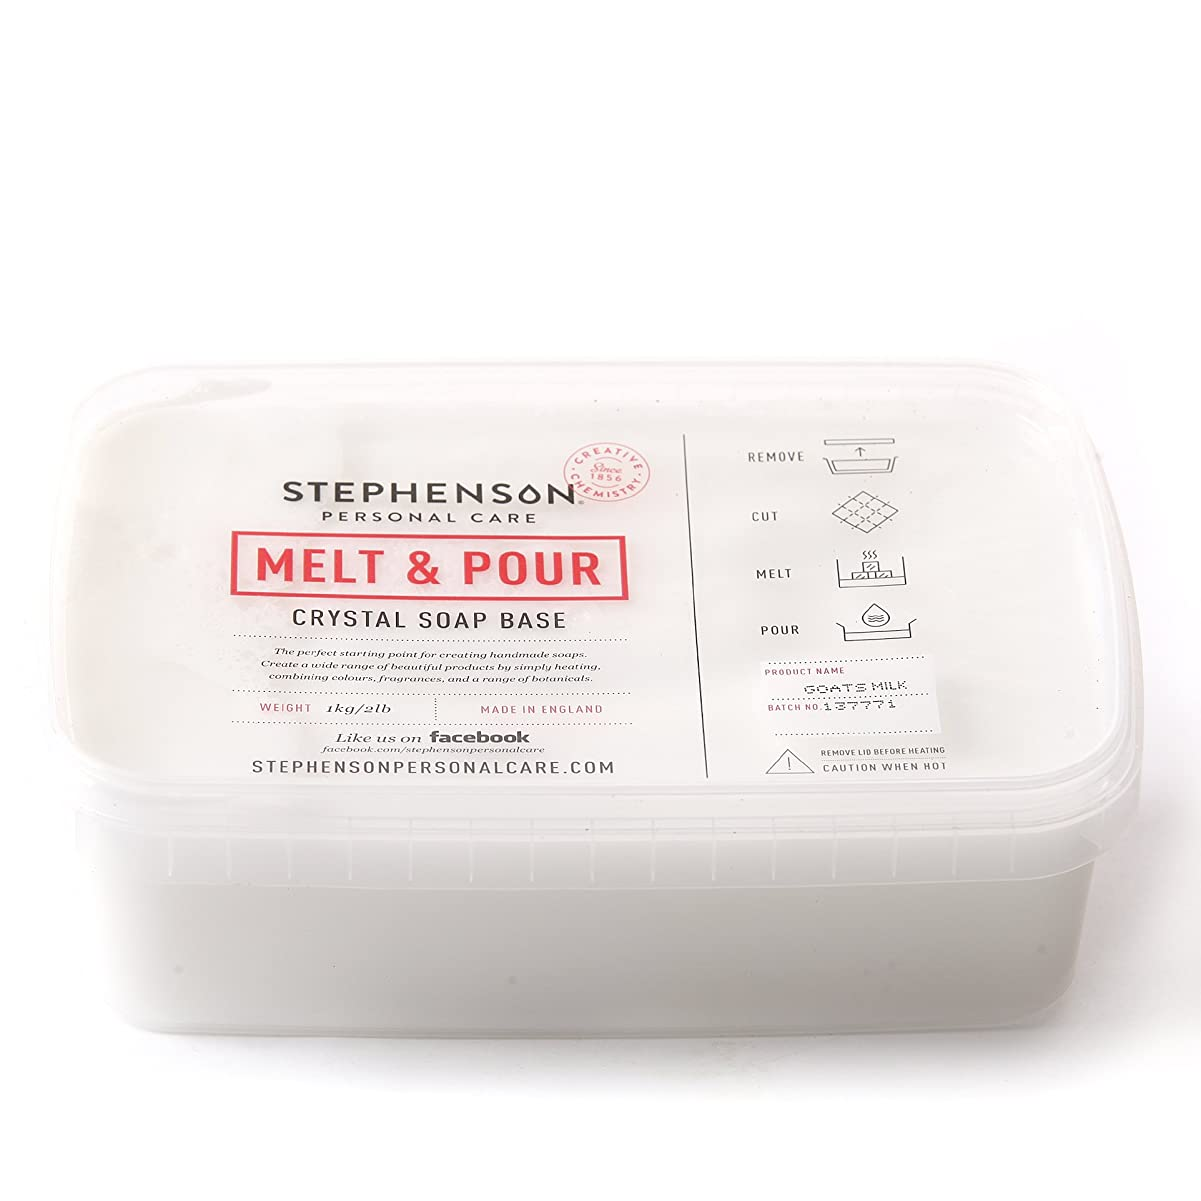 バリケード女王ブッシュMelt and Pour Soap Base Goat's Milk - 1Kg